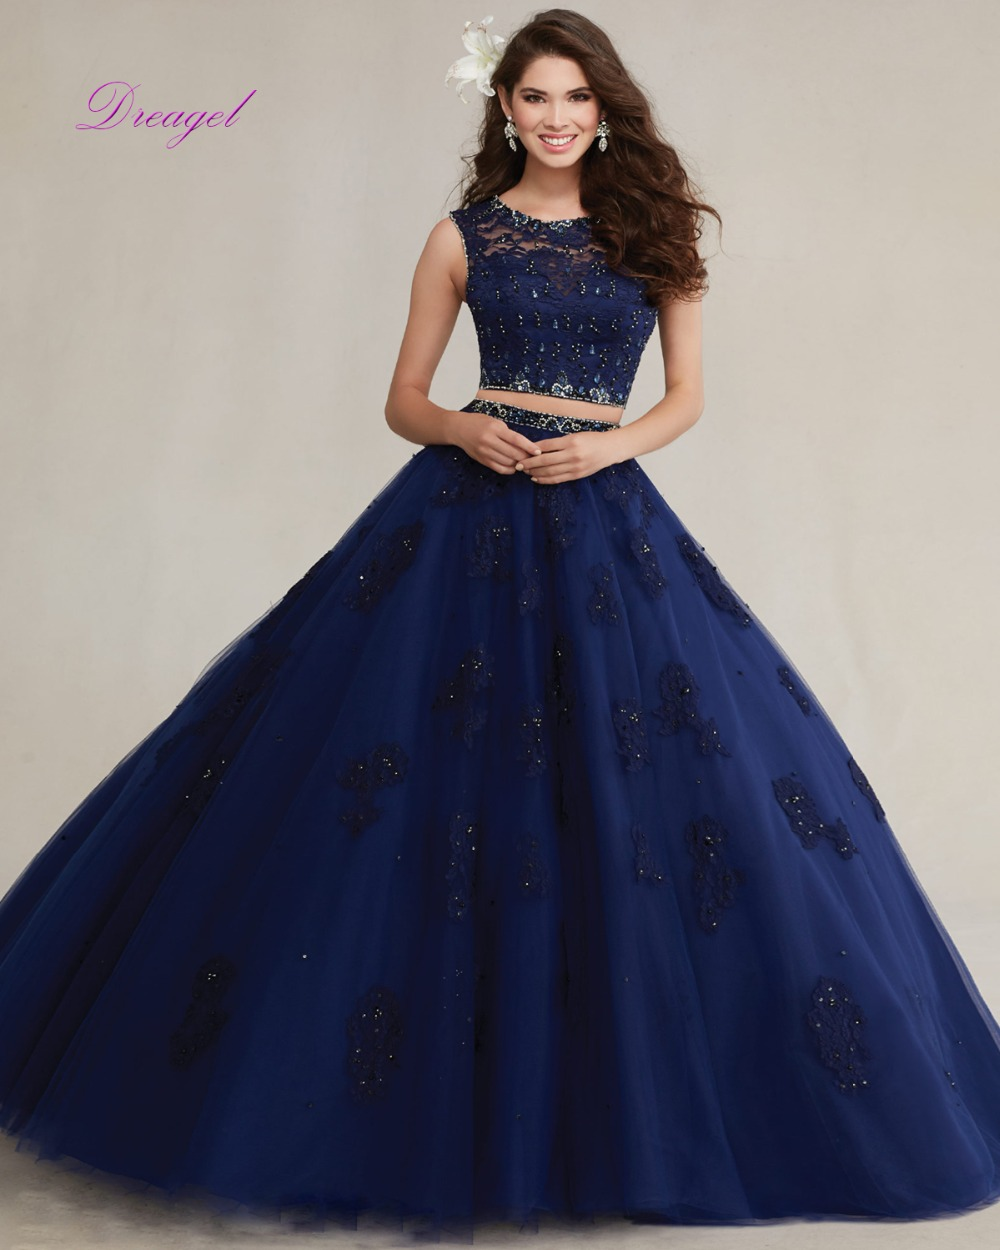 Dreagel New Elegant Scoop Collar Fancy Lace Crystal Beaded Quinceanera Dress Exquisite Organza Appliques 15 Anos Debutante Dress